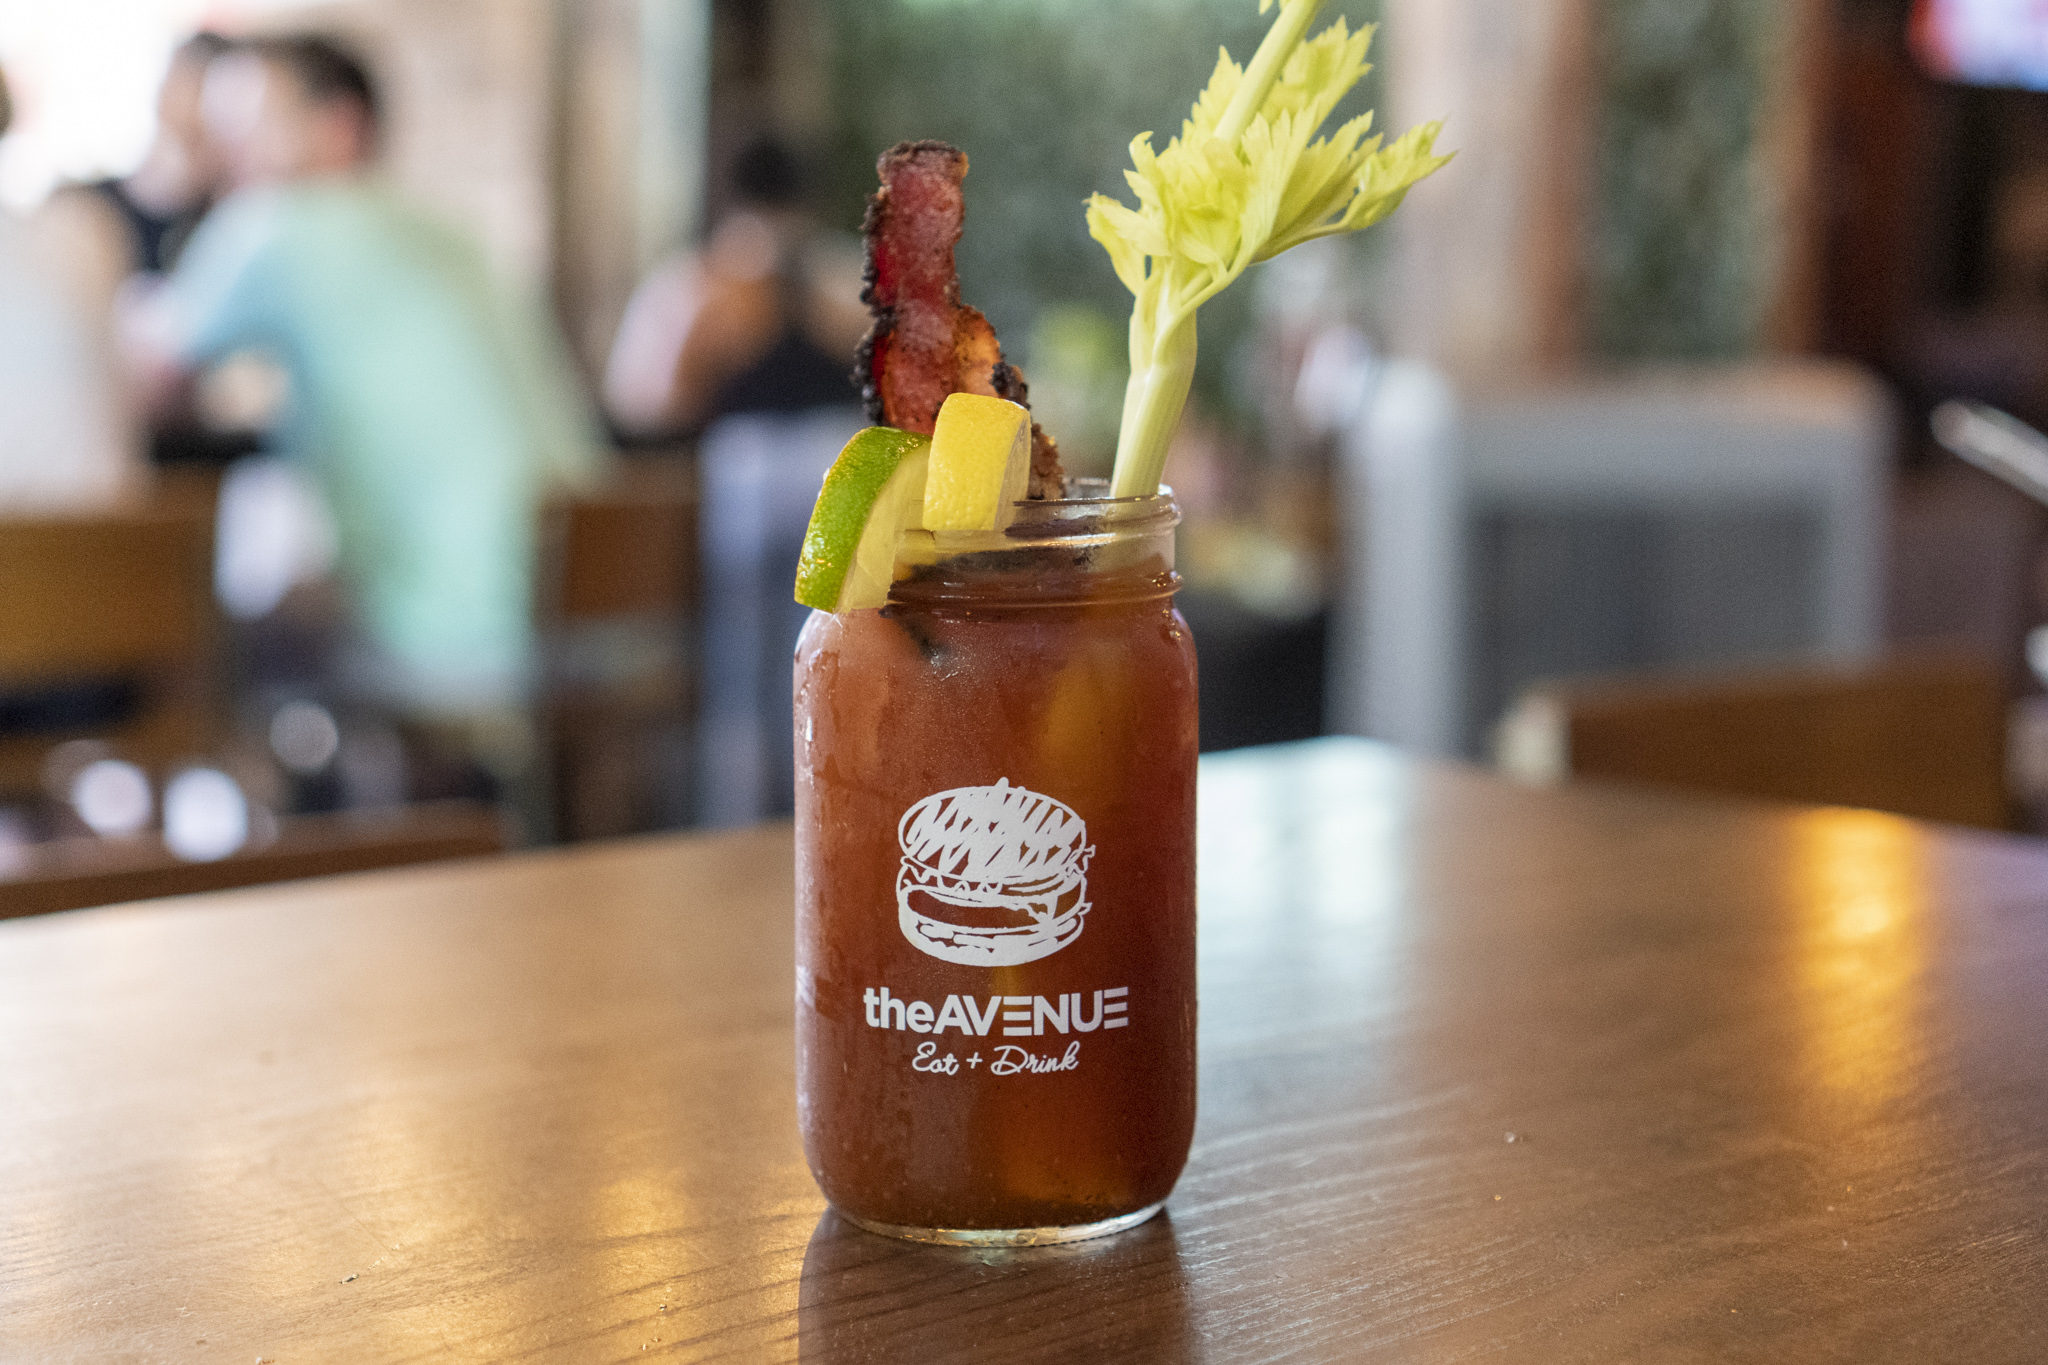 The Avenue Bloody Mary